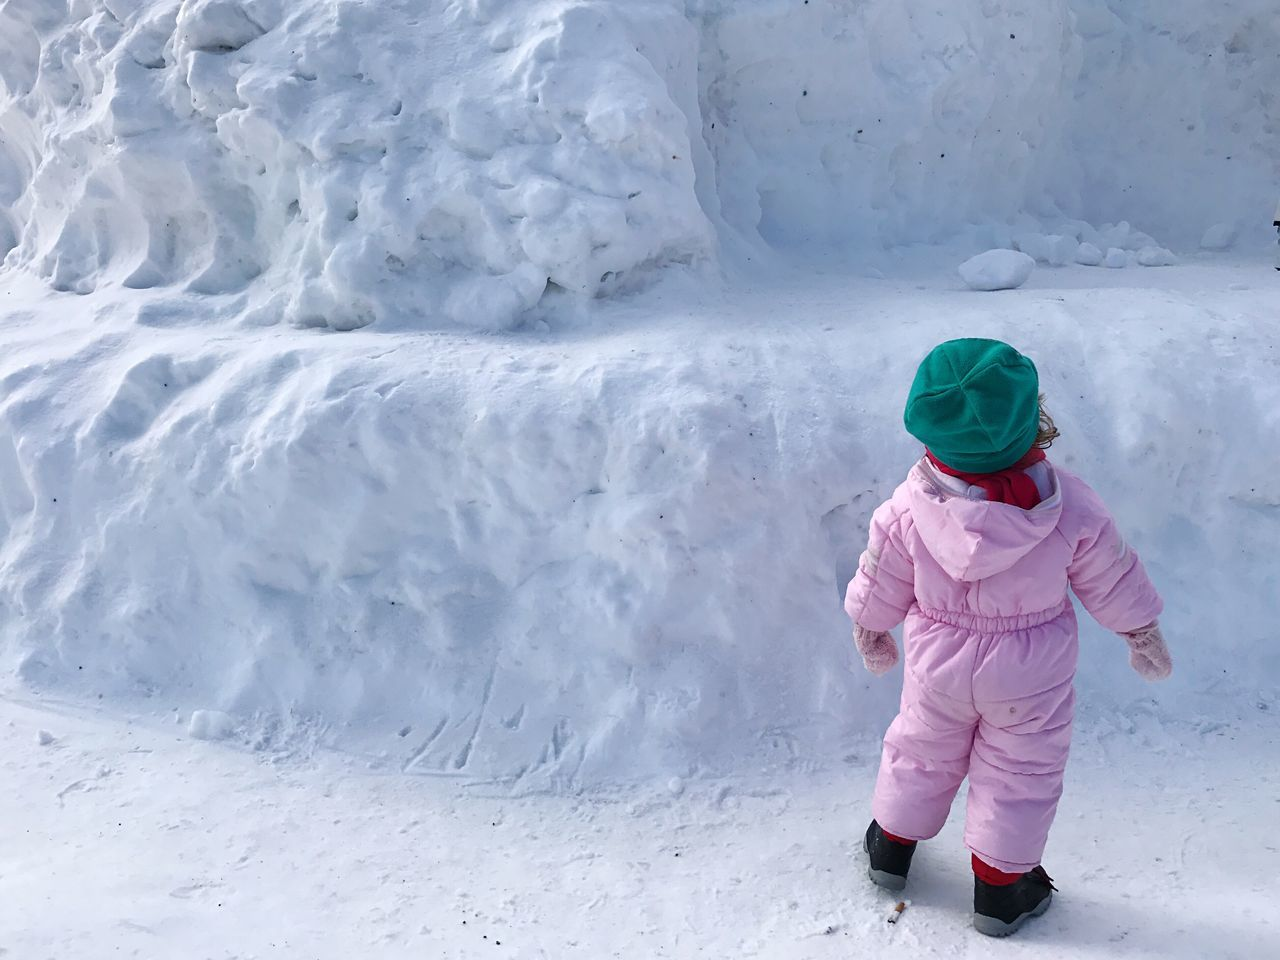 Winter Cold Temperature Snow Child Children Only Warm Clothing Ice Childhood Nature Full Length Frozen One Person Environment Outdoors Real People Beauty In Nature Day People